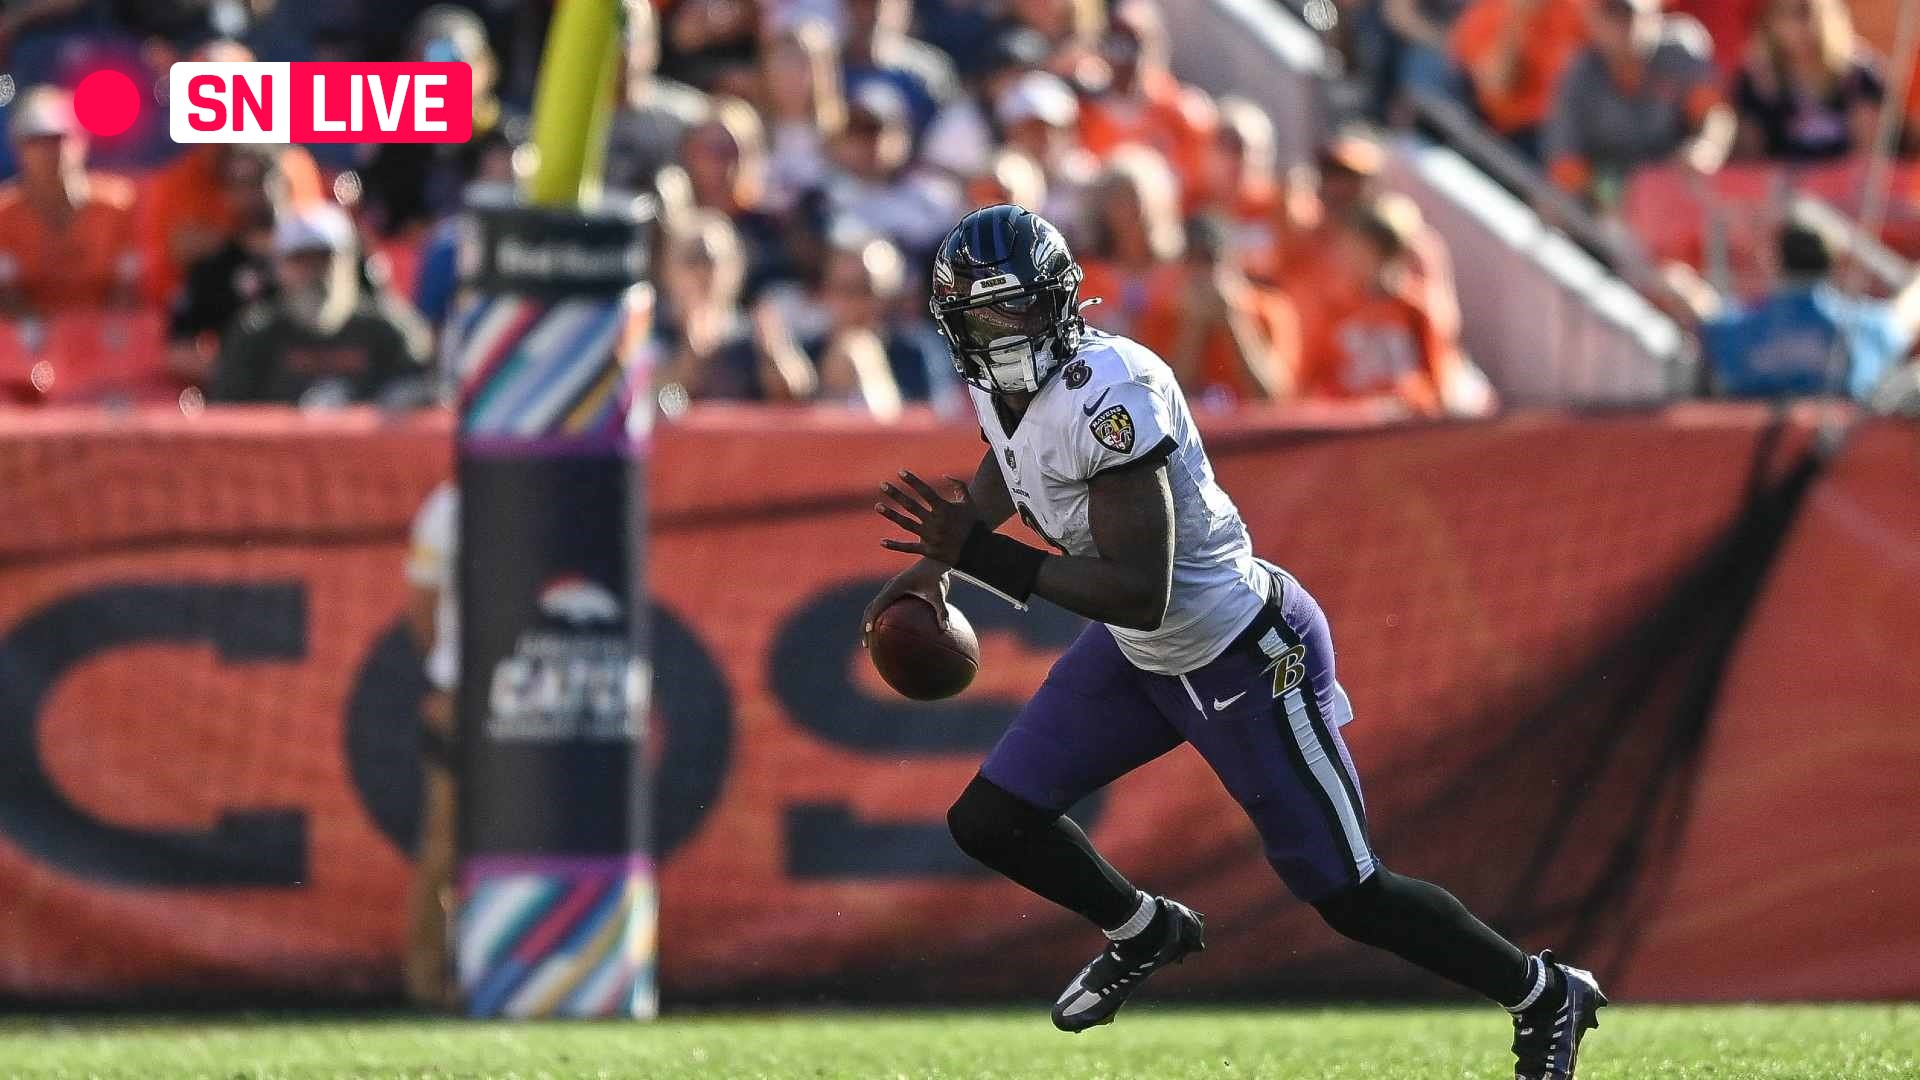 Colts vs. Ravens live score, updates, highlights from NFL 'Monday Night Football' game